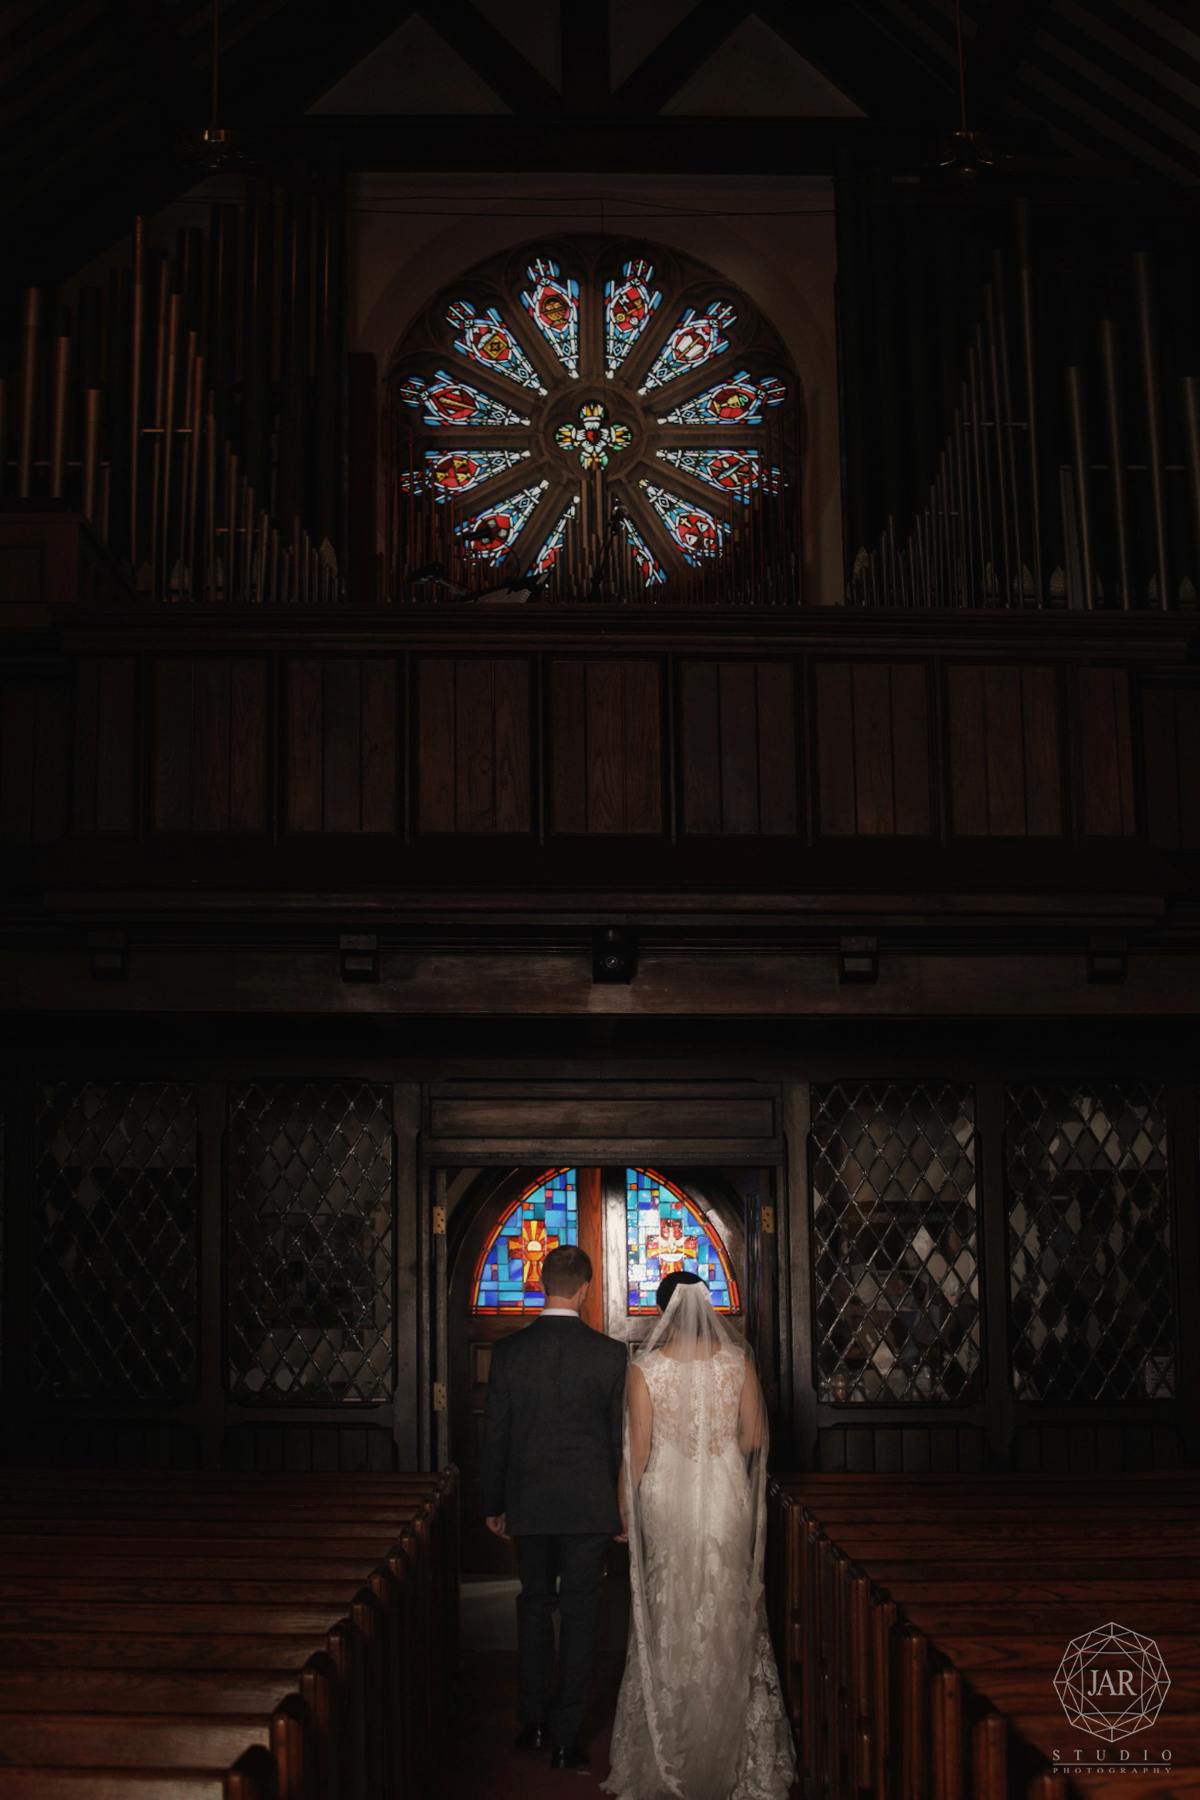 28-vintage-church-for-weddings-classic-stainglass-and-organ-jarstudio-photography-orlando.JPG